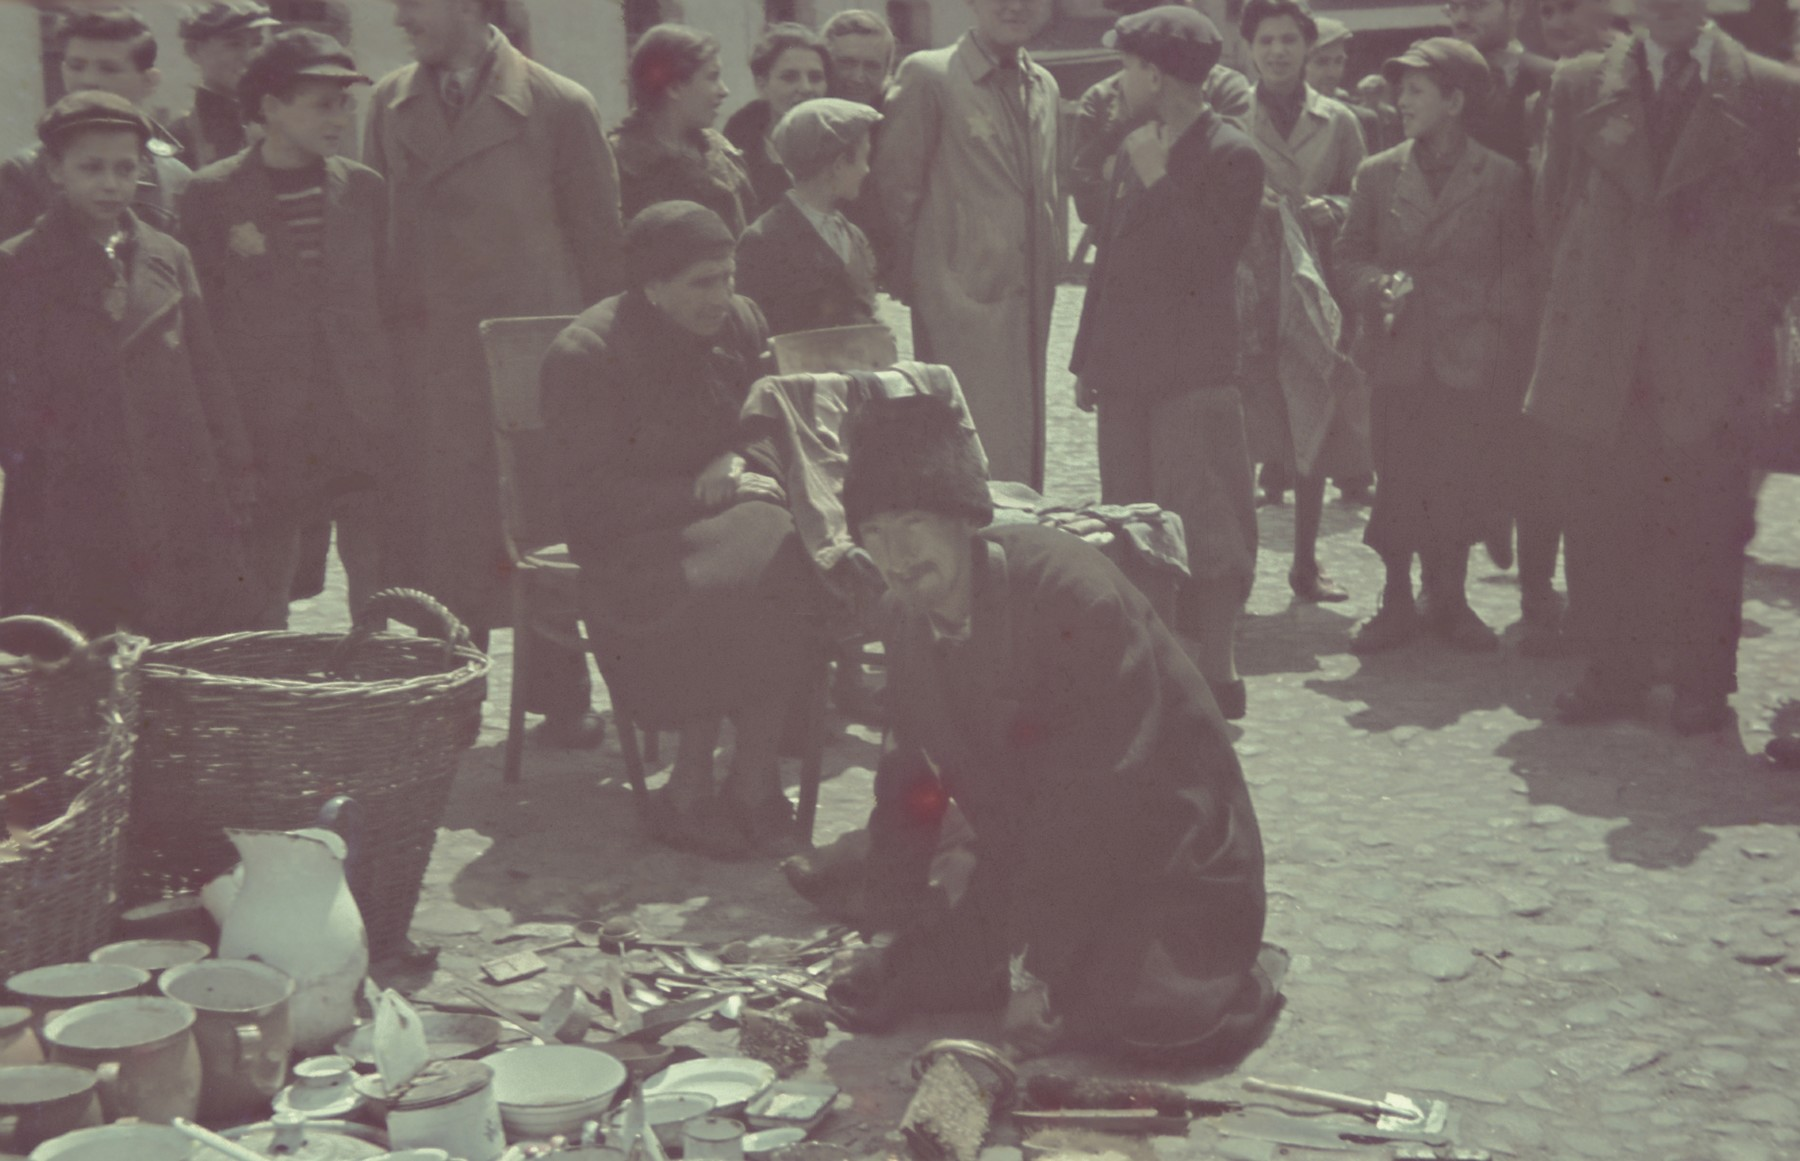 A man sits on the ground next to some used wares he is selling in the outdoor market of the Lodz ghetto.